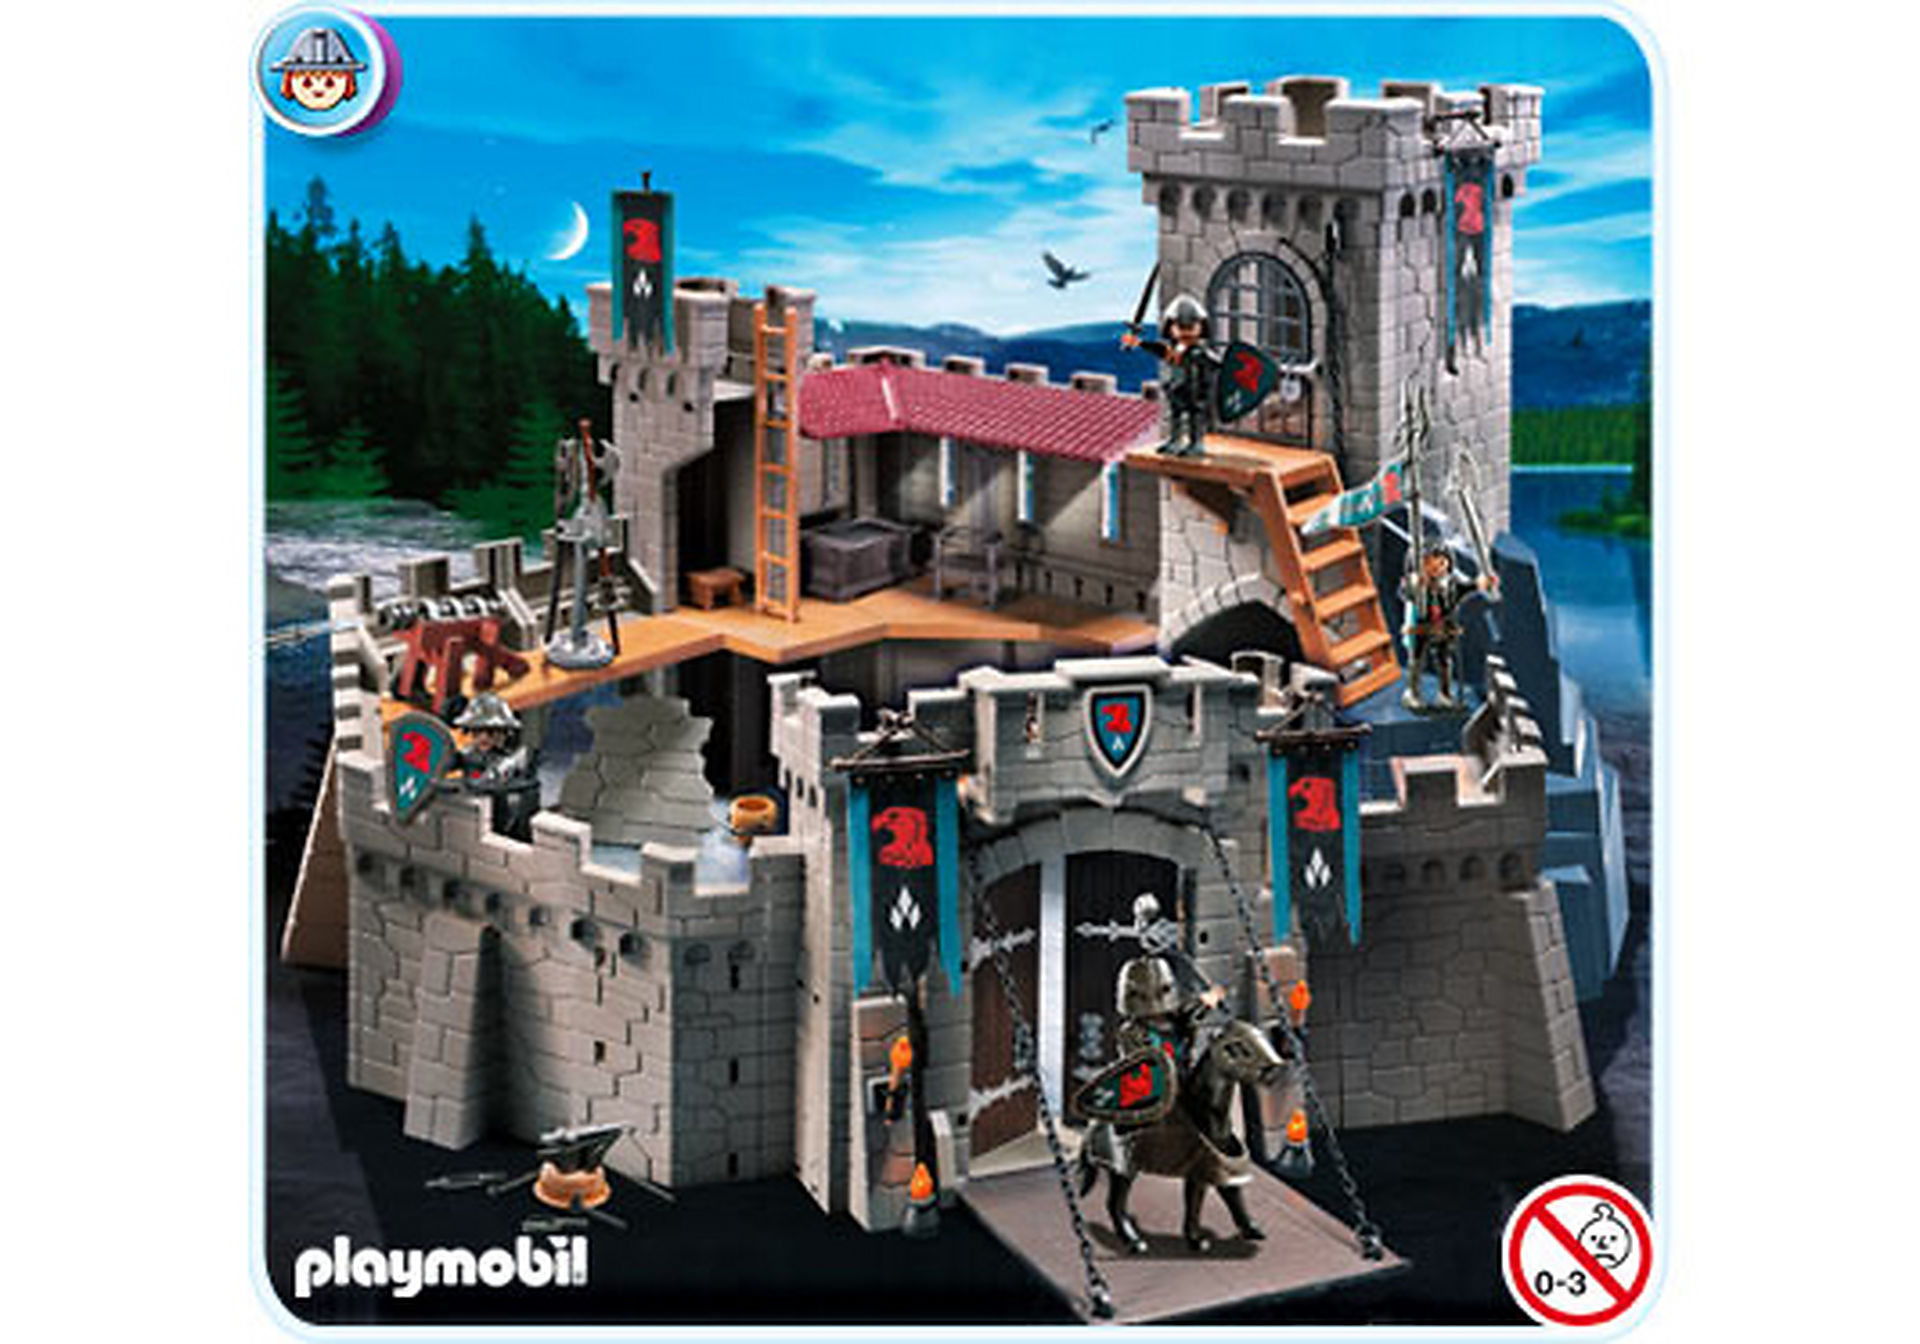 http://media.playmobil.com/i/playmobil/4866-A_product_detail/Raubritterburg